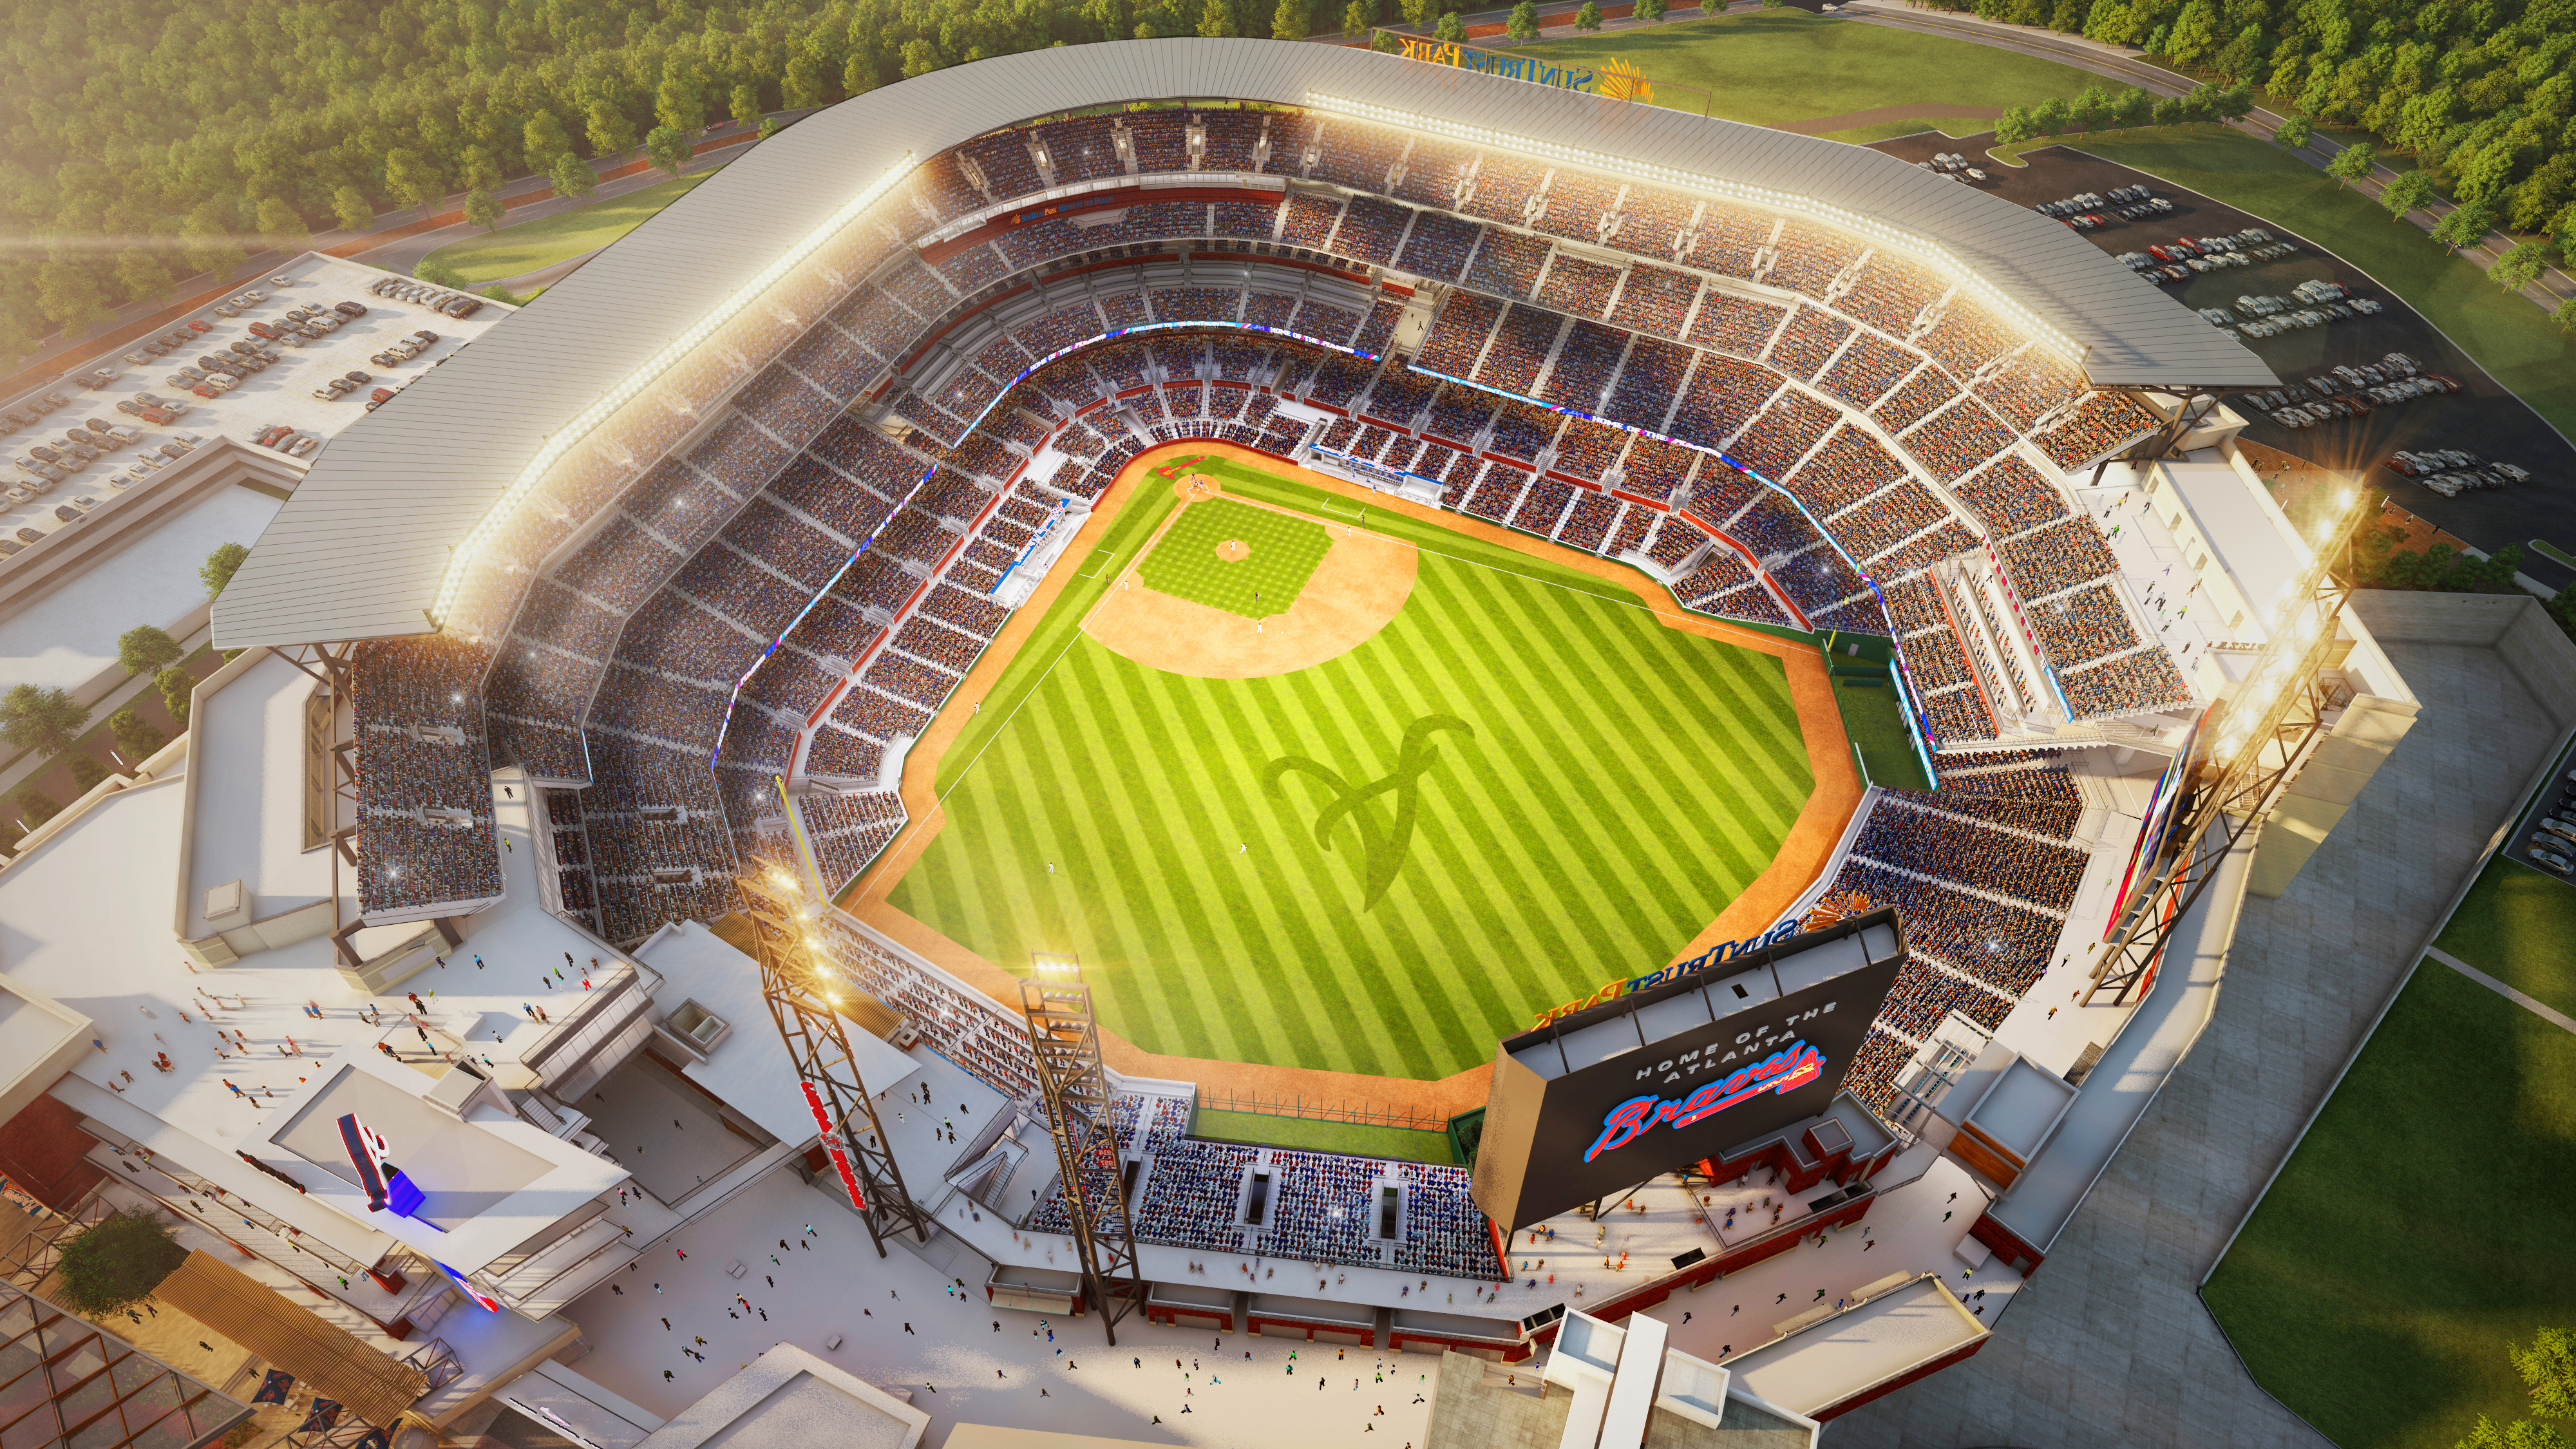 Image: SunTrust Park (Atlanta Braves Ballpark)